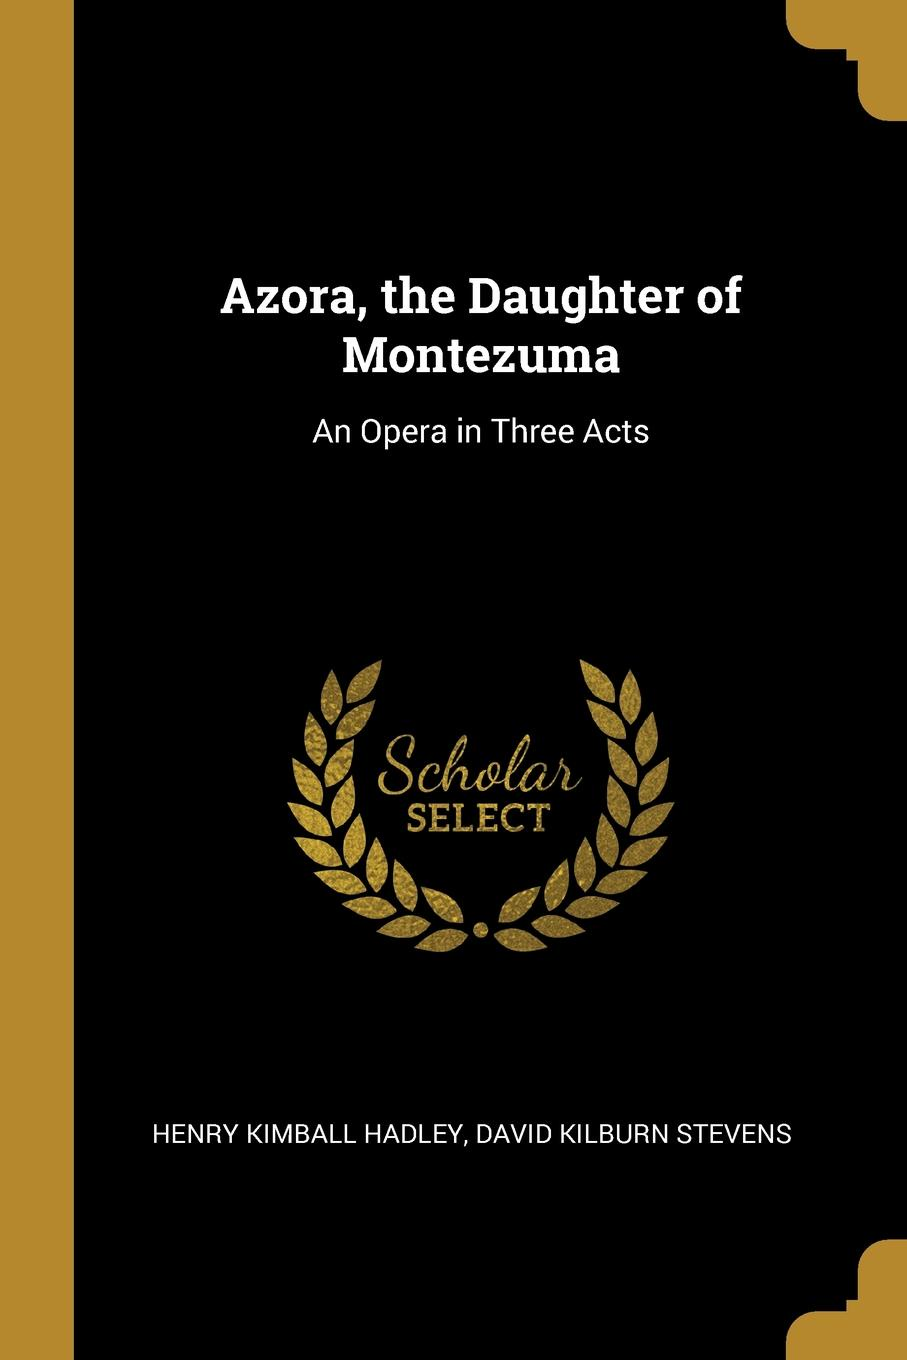 David Kilburn Stevens H Kimball Hadley. Azora, the Daughter of Montezuma. An Opera in Three Acts